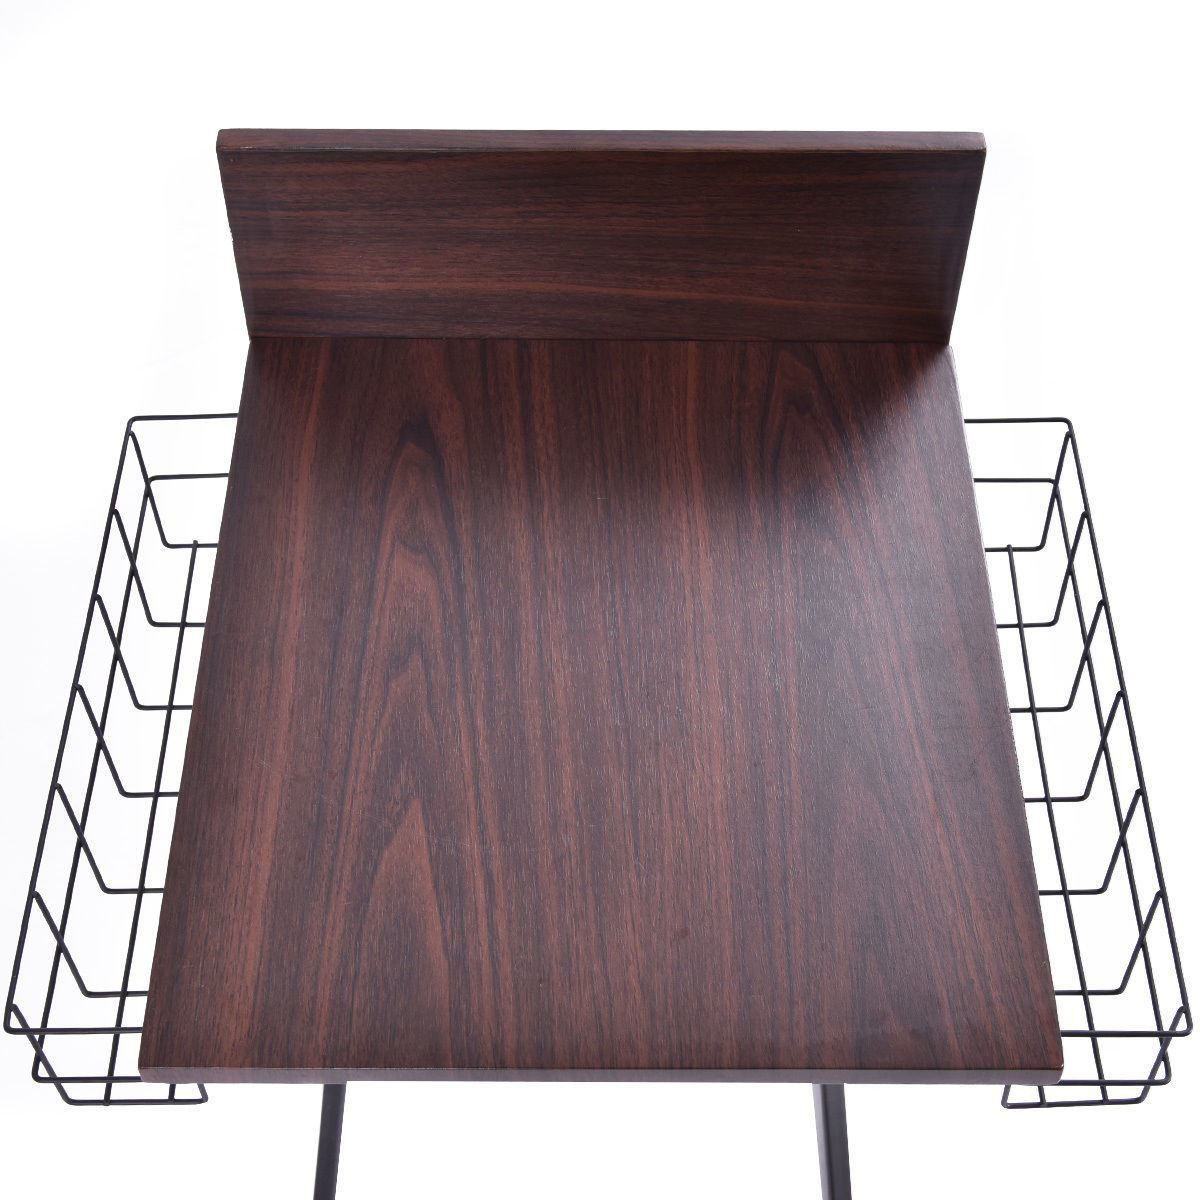 Picture of Living Room Side Table for Sofa Furniture with Storage Basket